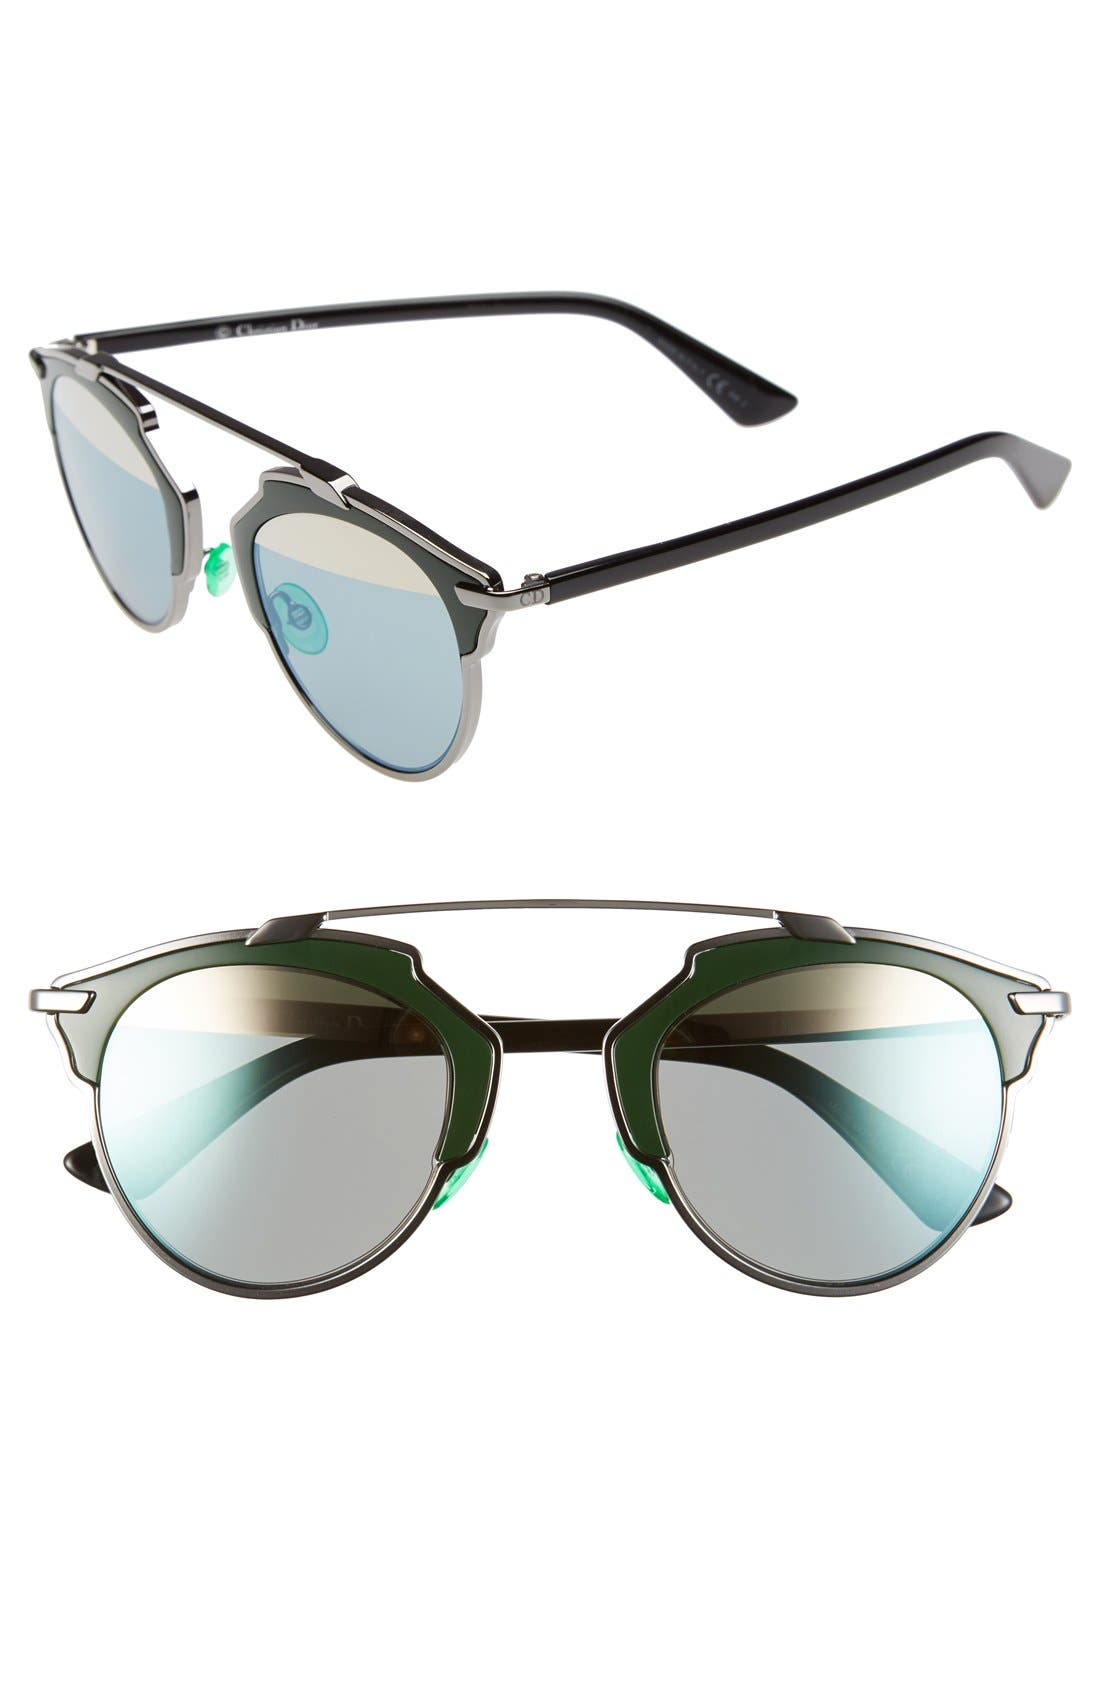 So Real 48mm Brow Bar Sunglasses,                             Main thumbnail 1, color,                             Ruthenium/ Green/ Black